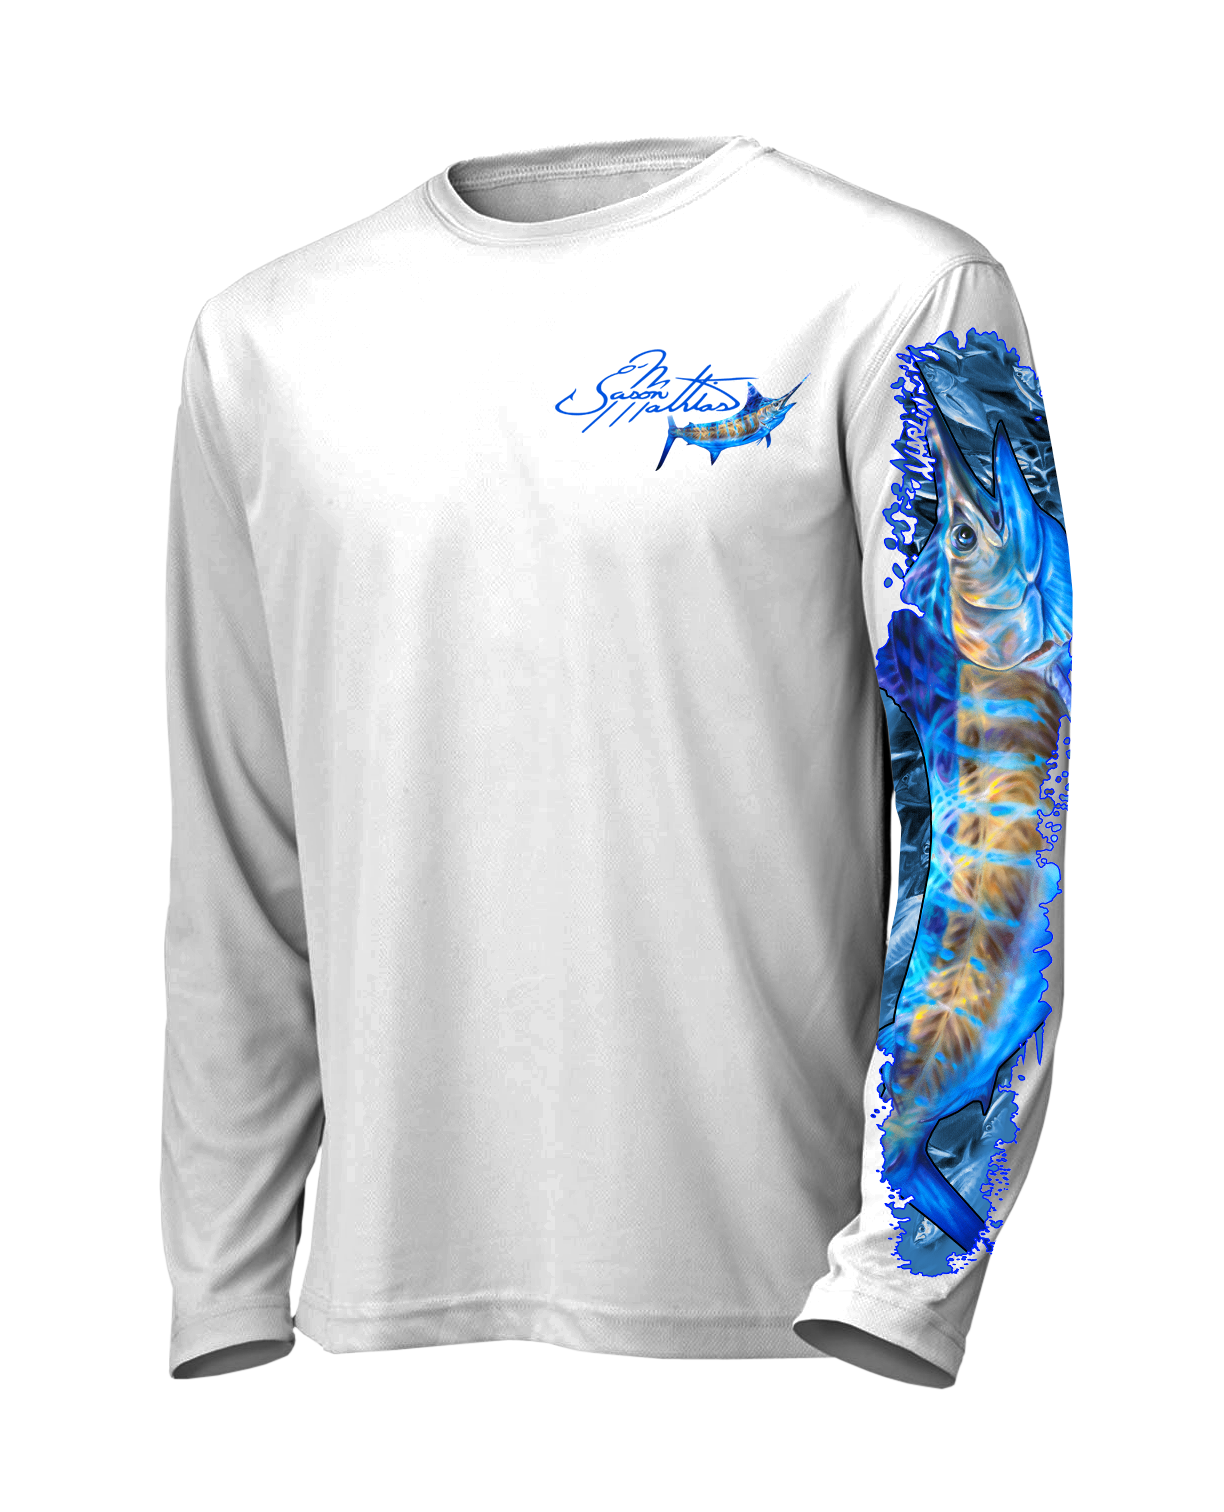 blue-marlin-it-white-front-shirt-jason-mathias-apparel-gear-fishing-gamefish-art-sportfish-art-tee-shirt-t-shirt-clothing.png